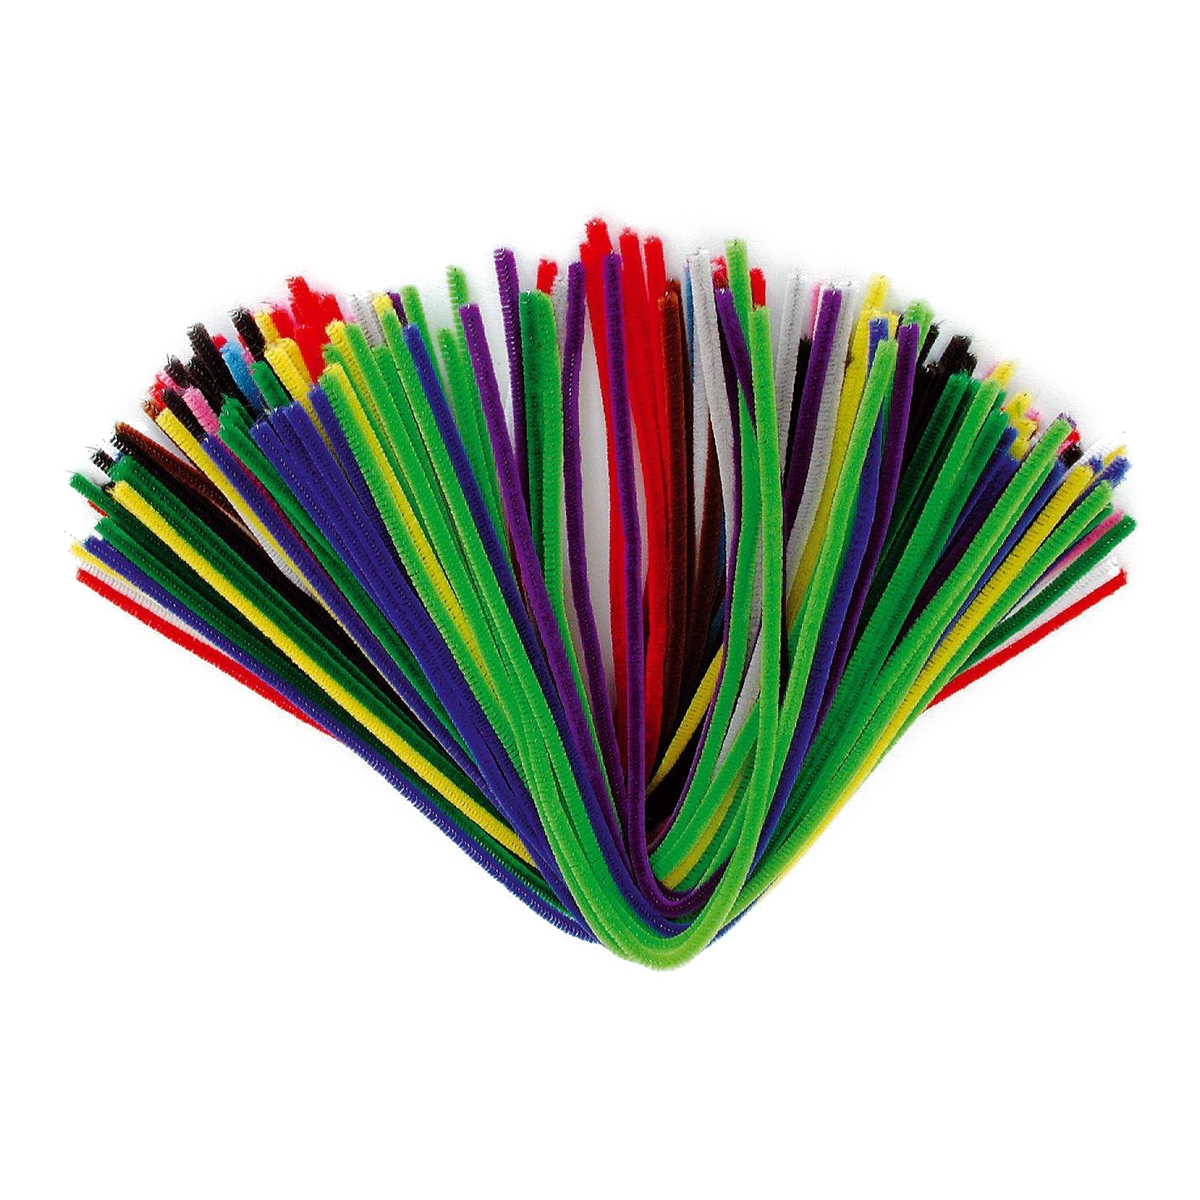 Pipe cleaners arts and crafts - Pipe Cleaners Arts And Crafts 100pcs Chenille Stems Pipe Cleaners For Home Diy Art Craft